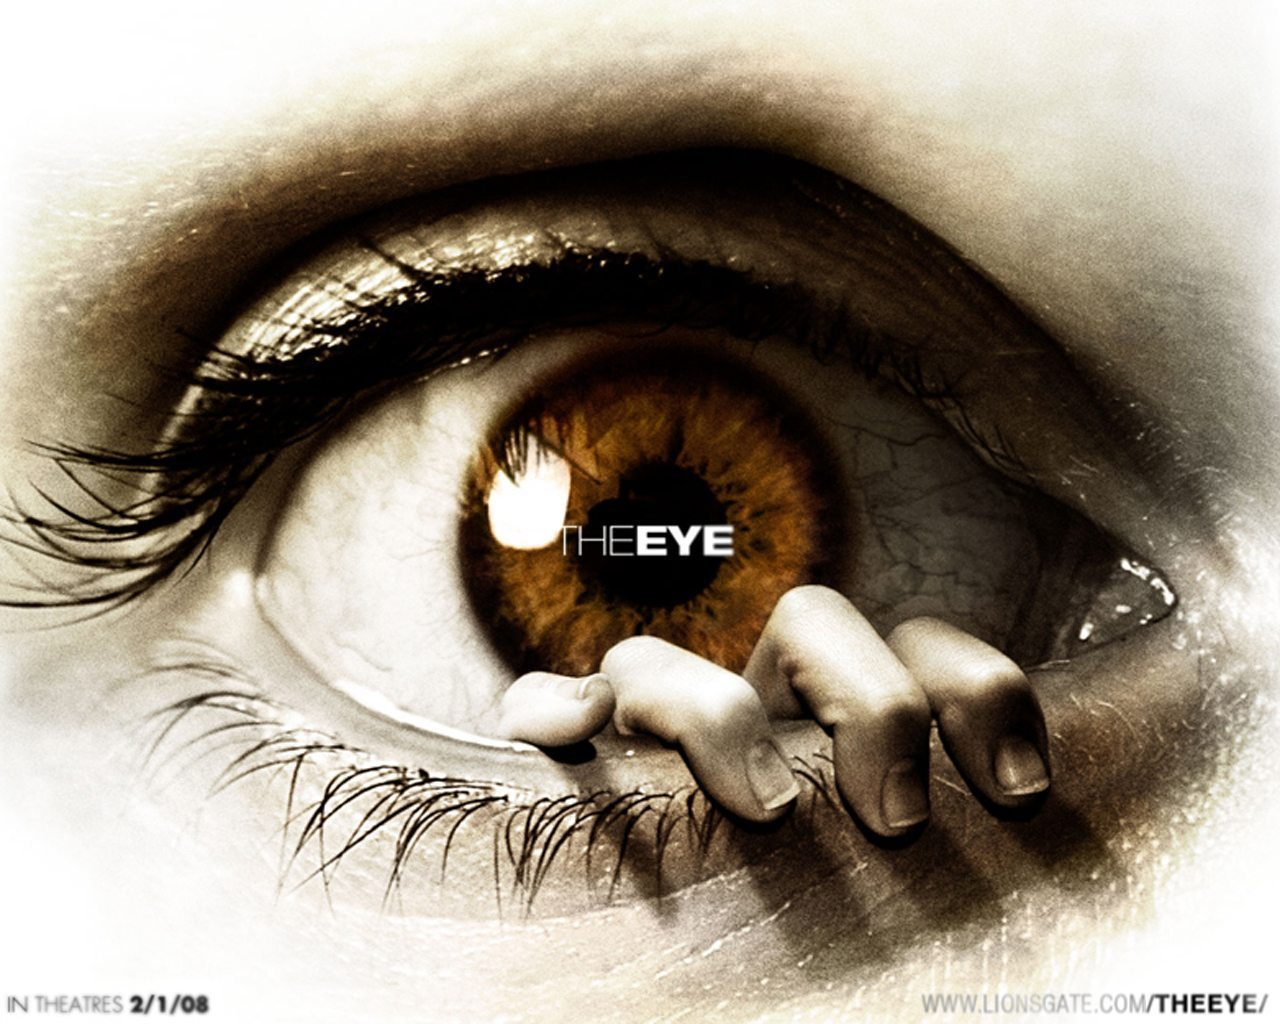 http://2.bp.blogspot.com/-degODIVXiEk/Ti-_vk9qIPI/AAAAAAAADwA/Th4TBalg2rs/s1600/The-Eye-wallpapers-horror-movies.jpg